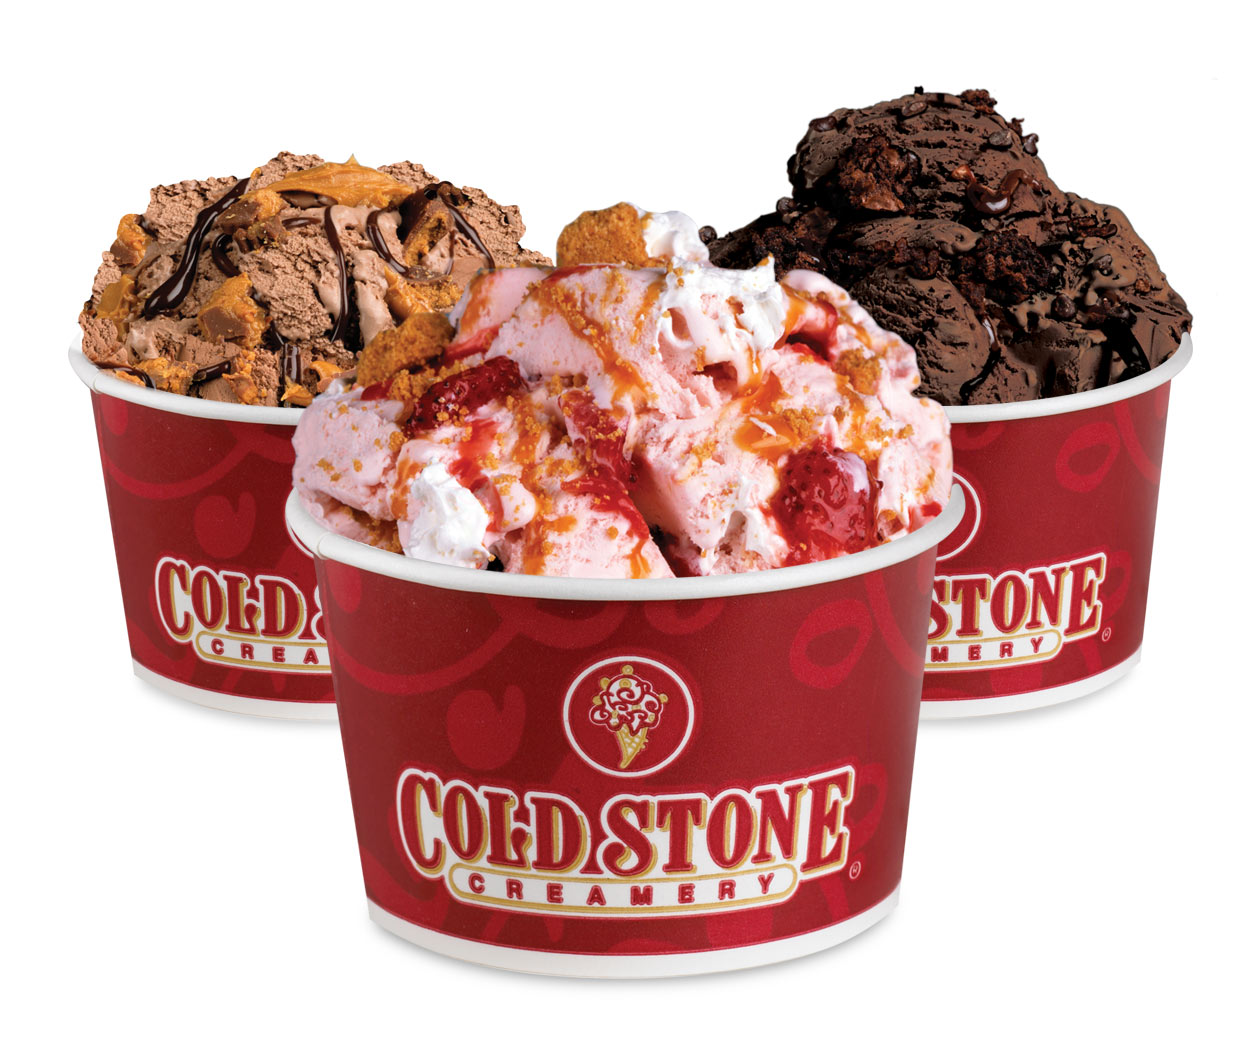 Ice Creams Only $2.40 at Cold Stone Creamery in Bel Air!